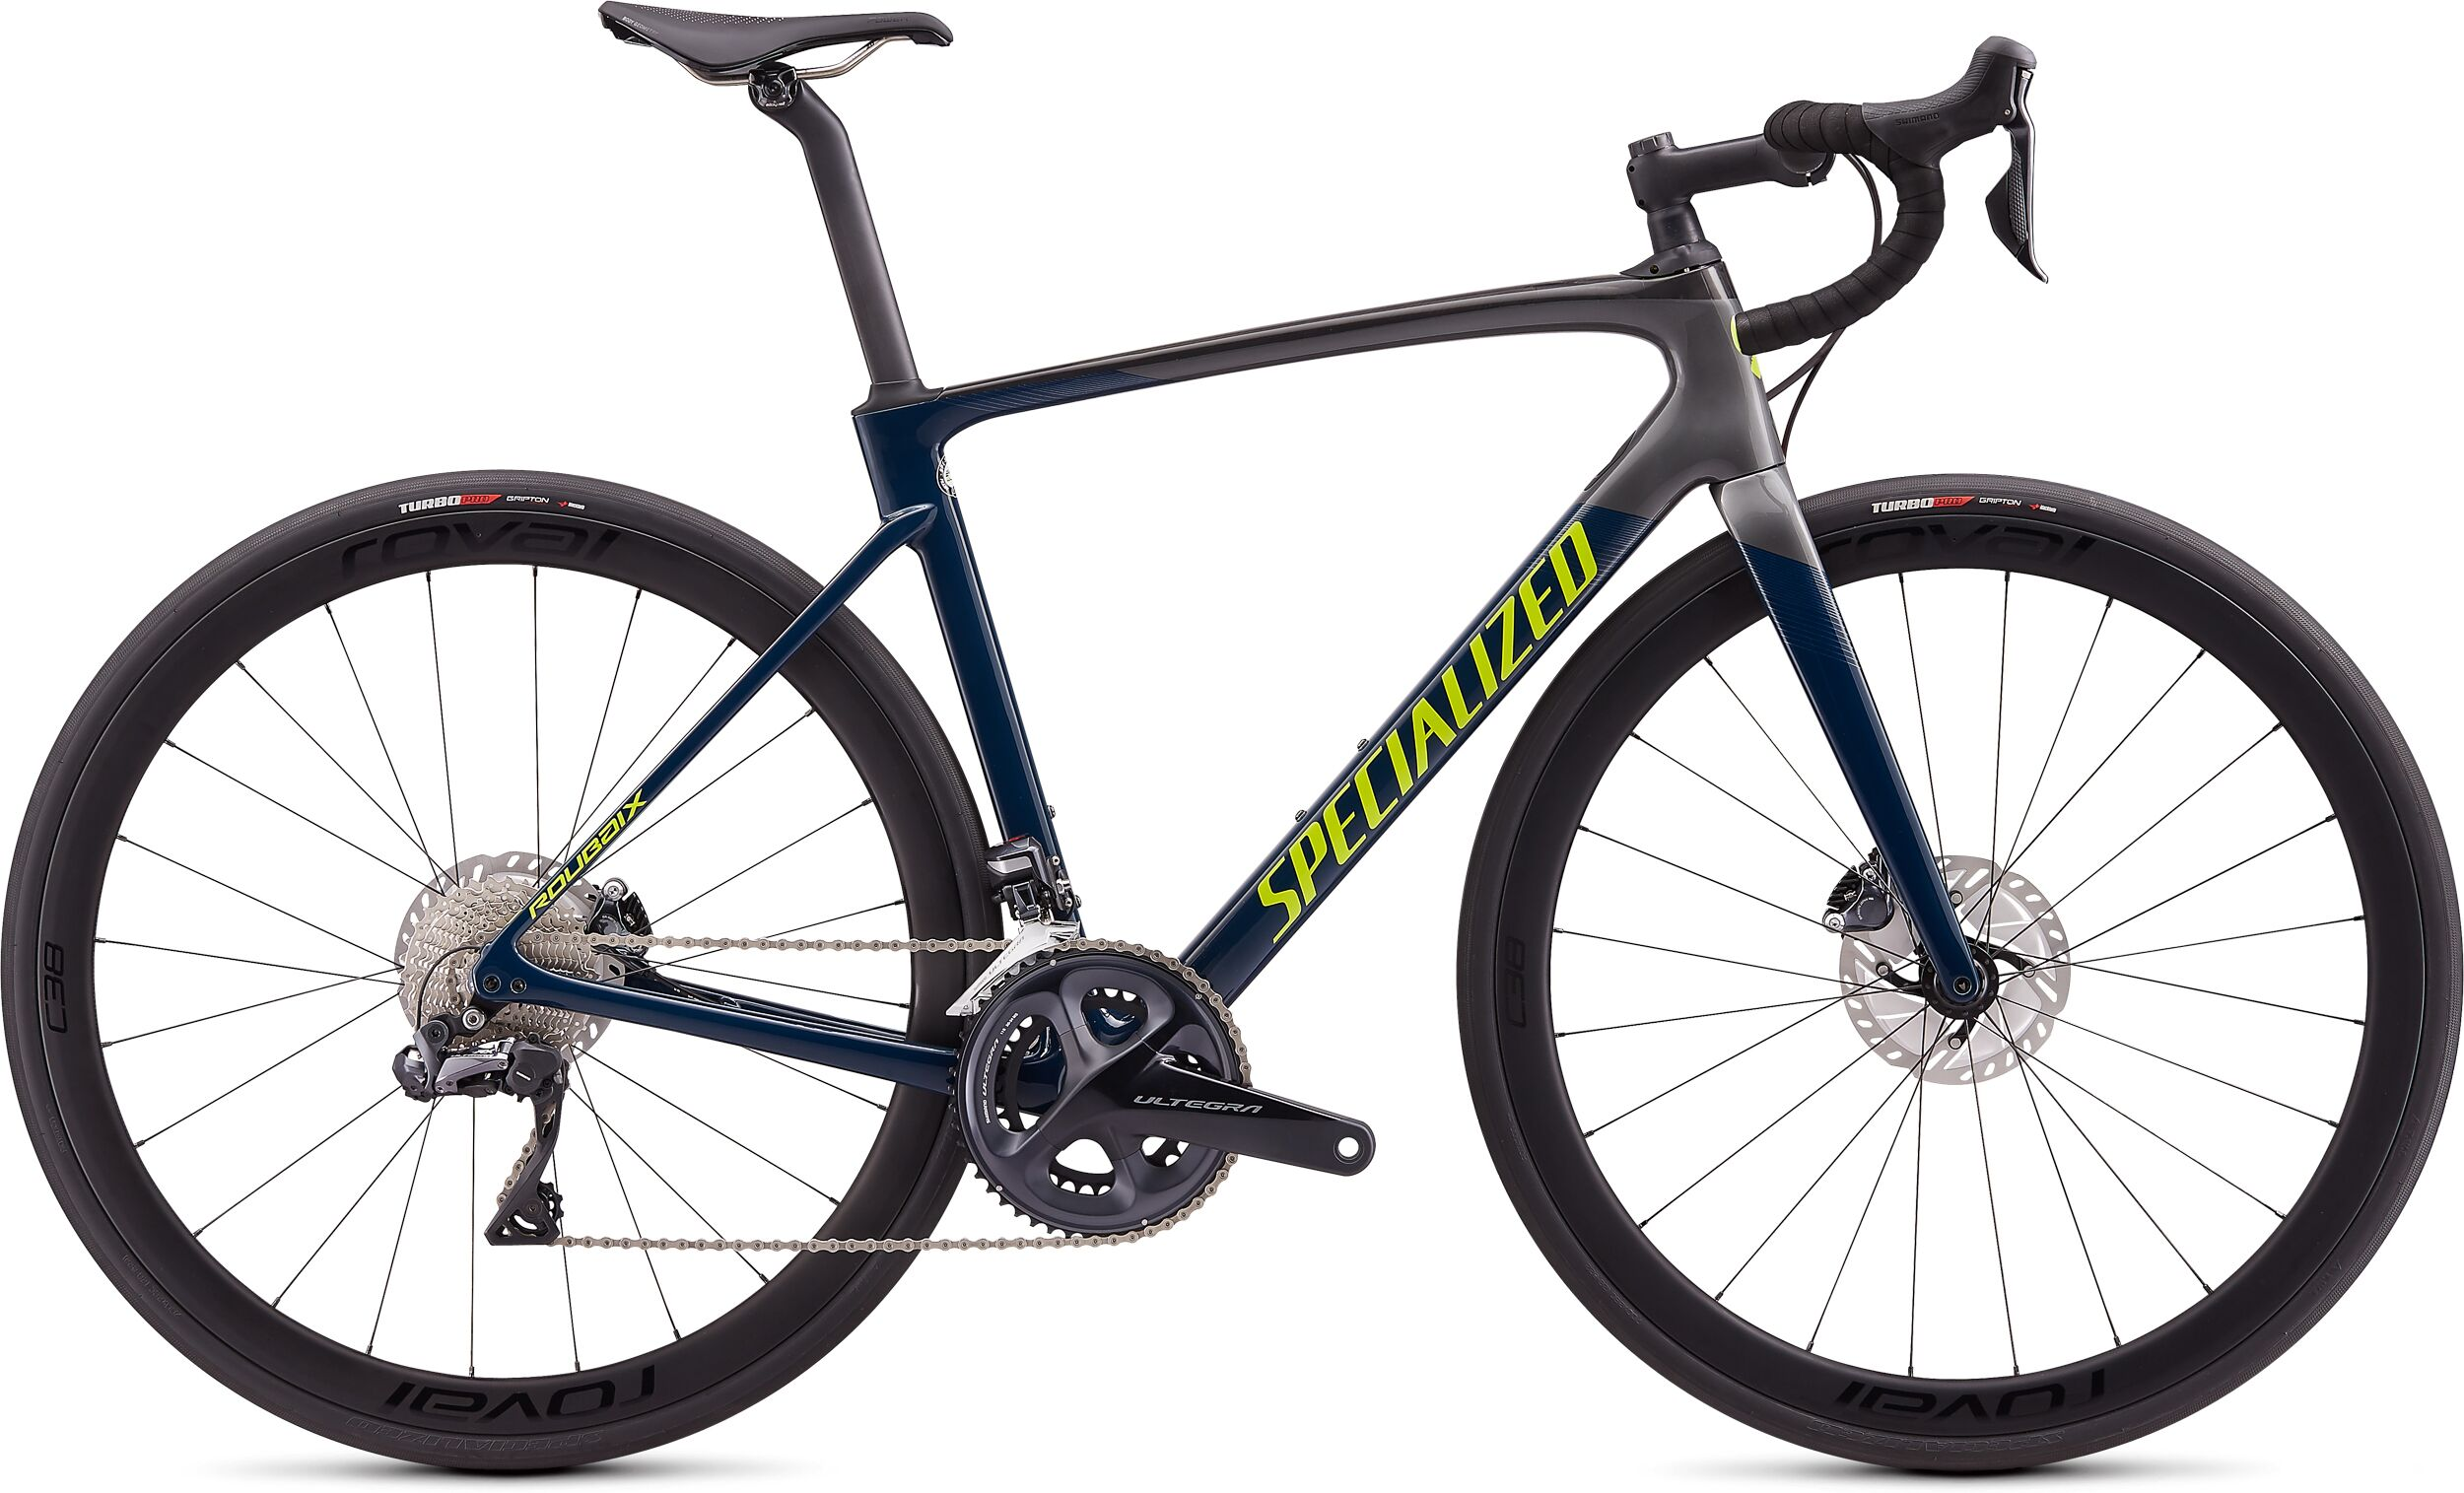 Specialized Roubaix Expert Road Bike 2020 Dusty Turquoise/Charcoal